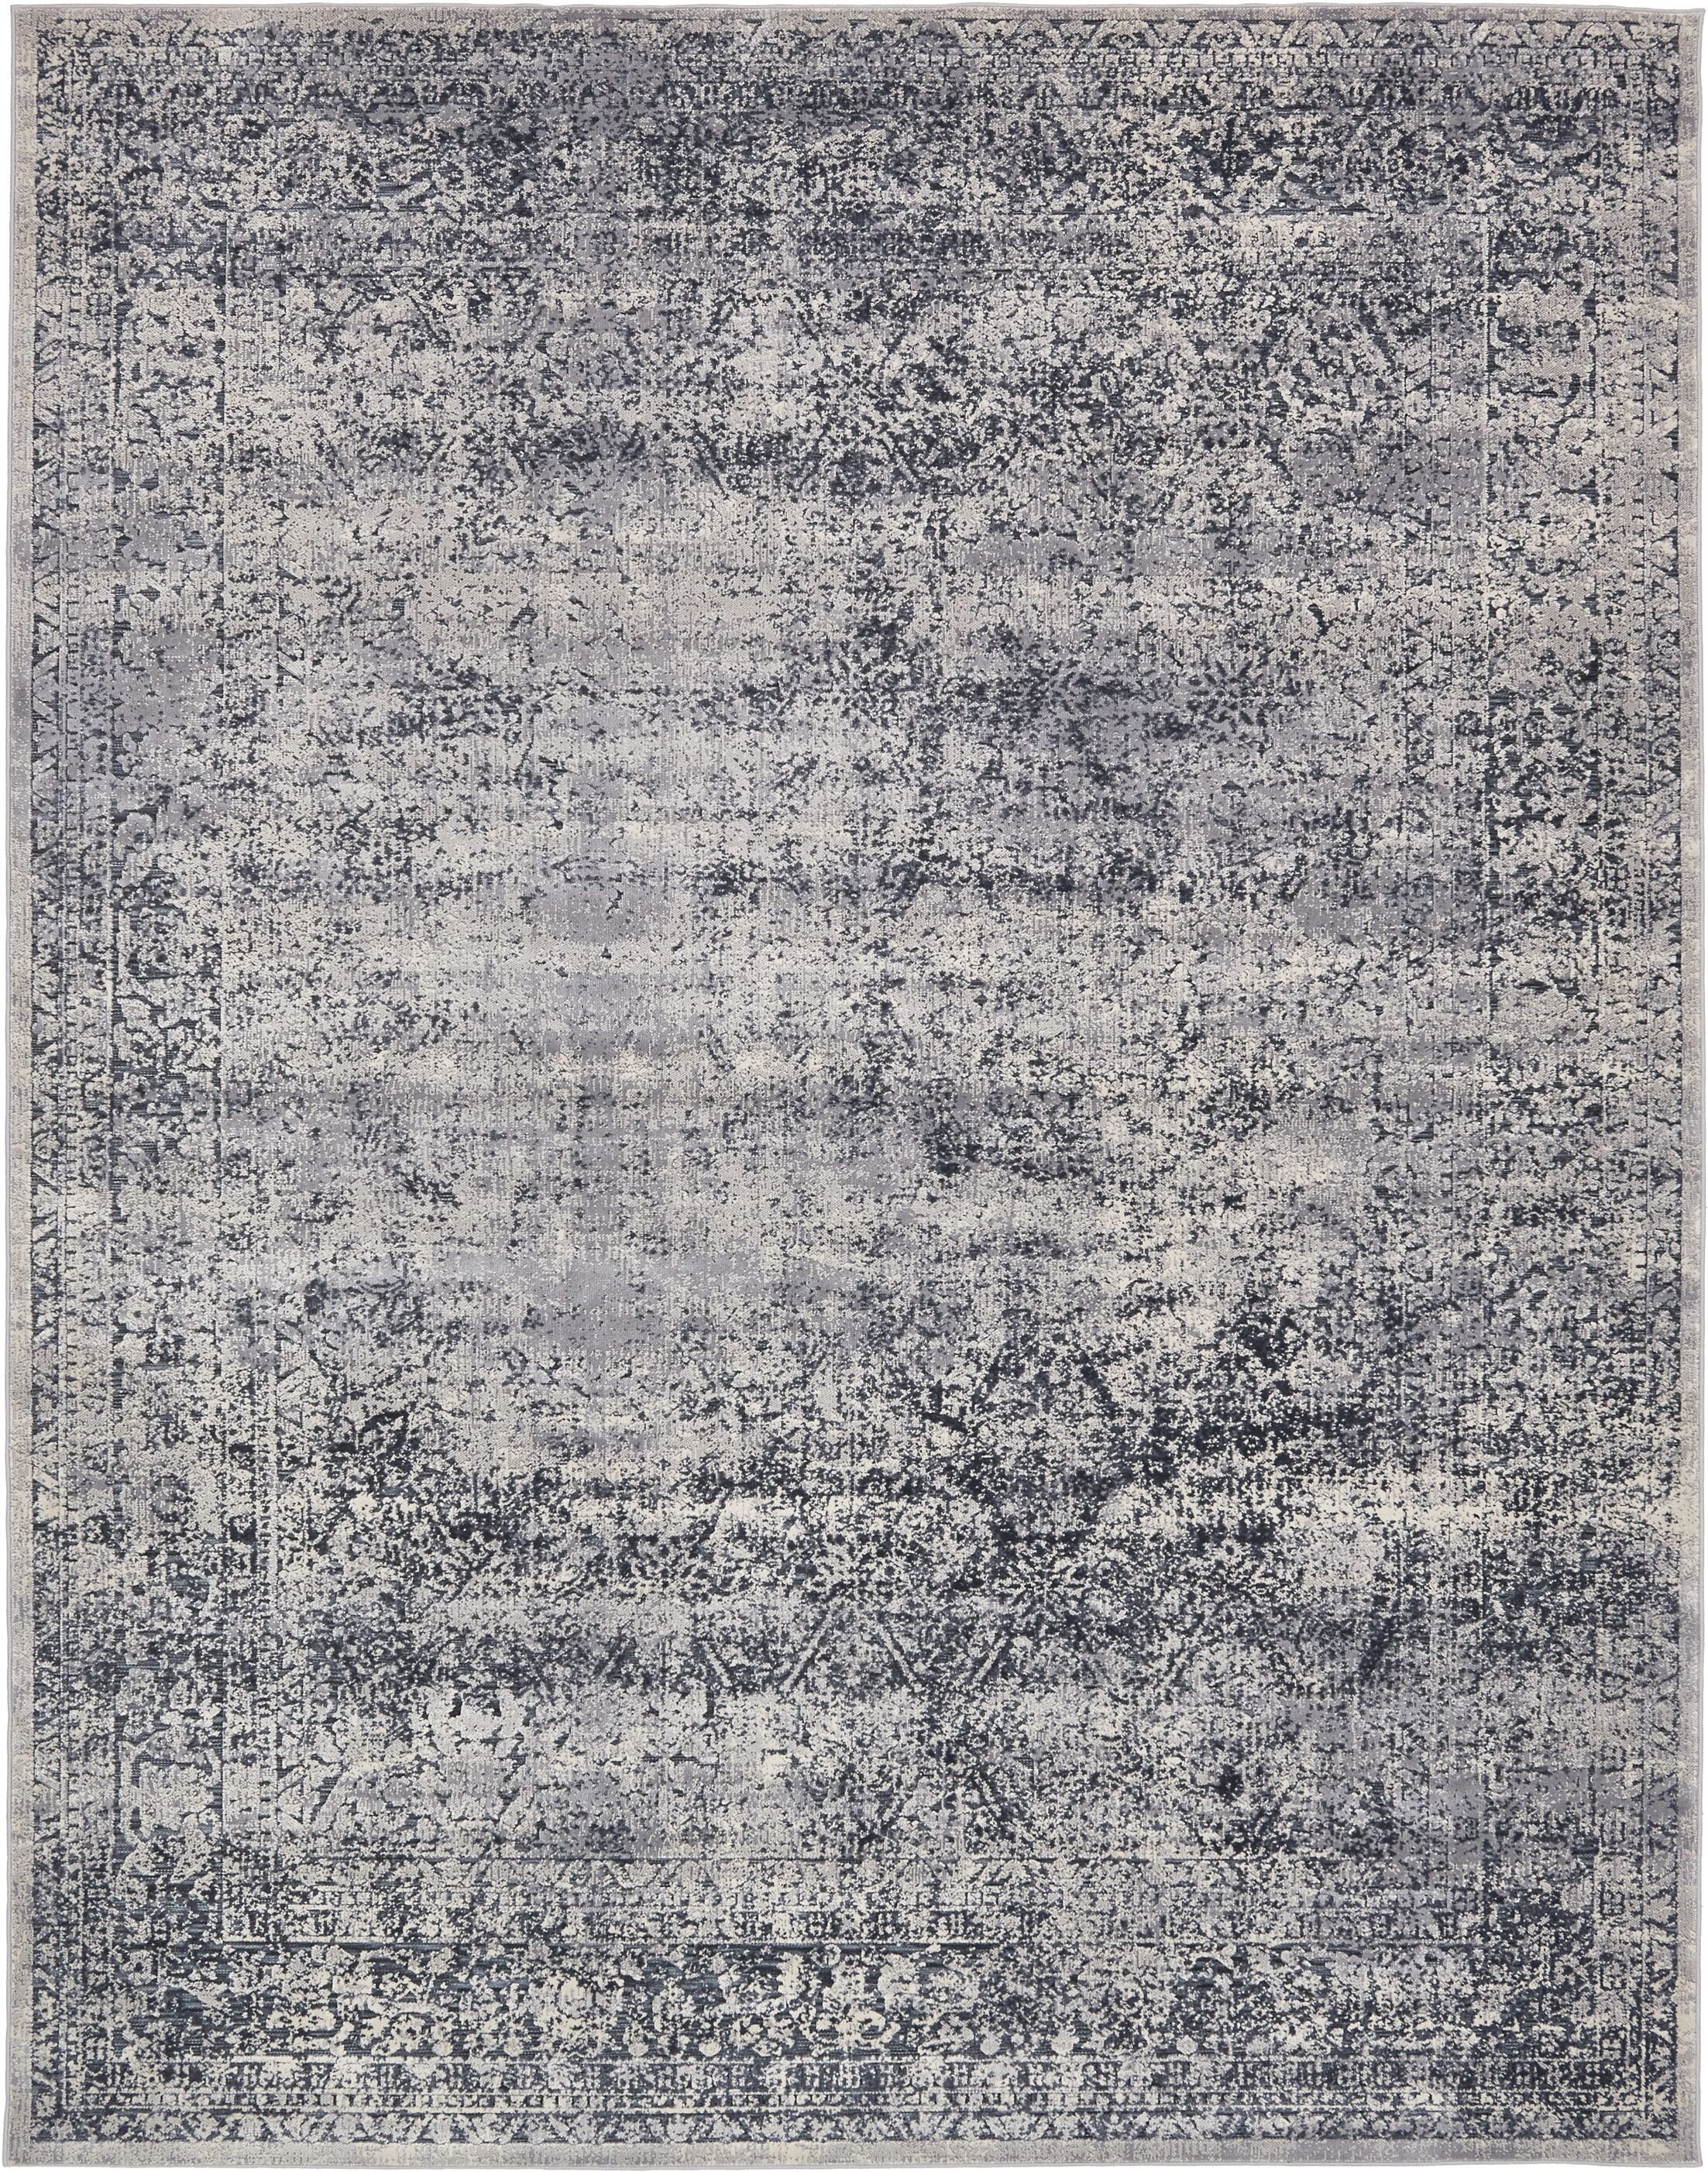 Abbeville Eclectic Dark Gray Area Rug Rug Size: Rectangle 8' x 10'